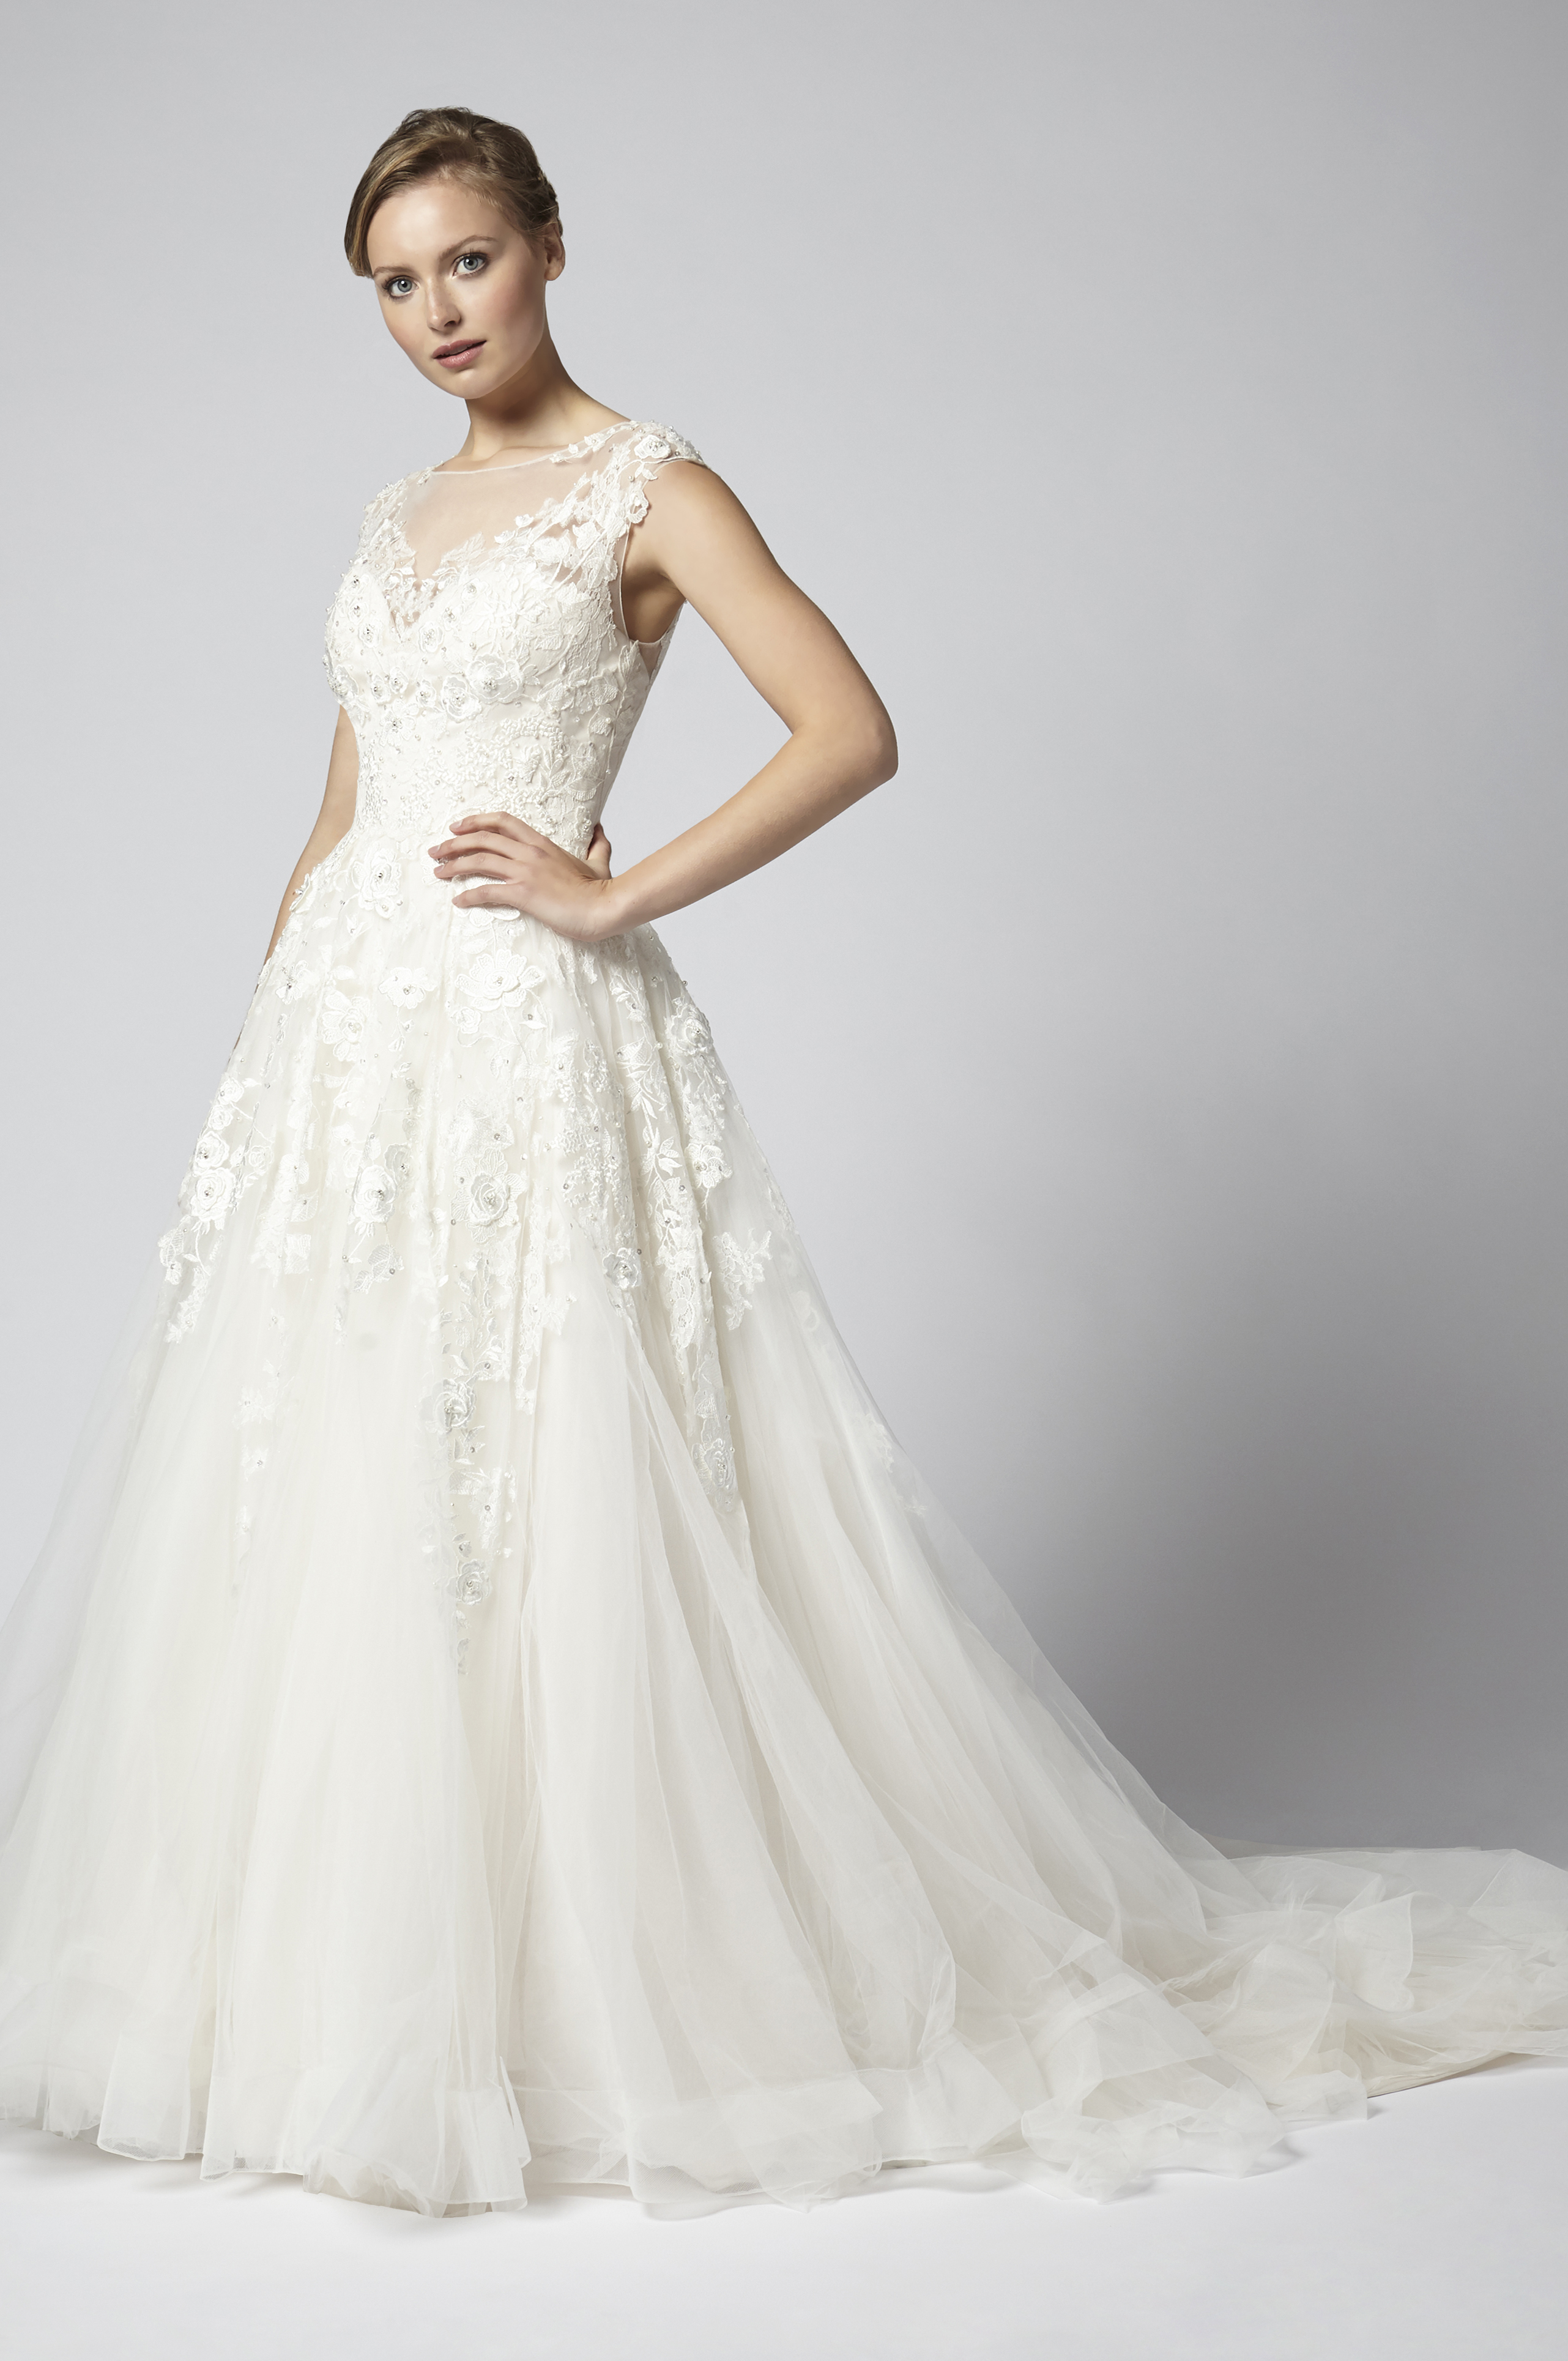 Embroidered Ball Gown Wedding Dress With Tulle Skirt   Kleinfeld Bridal